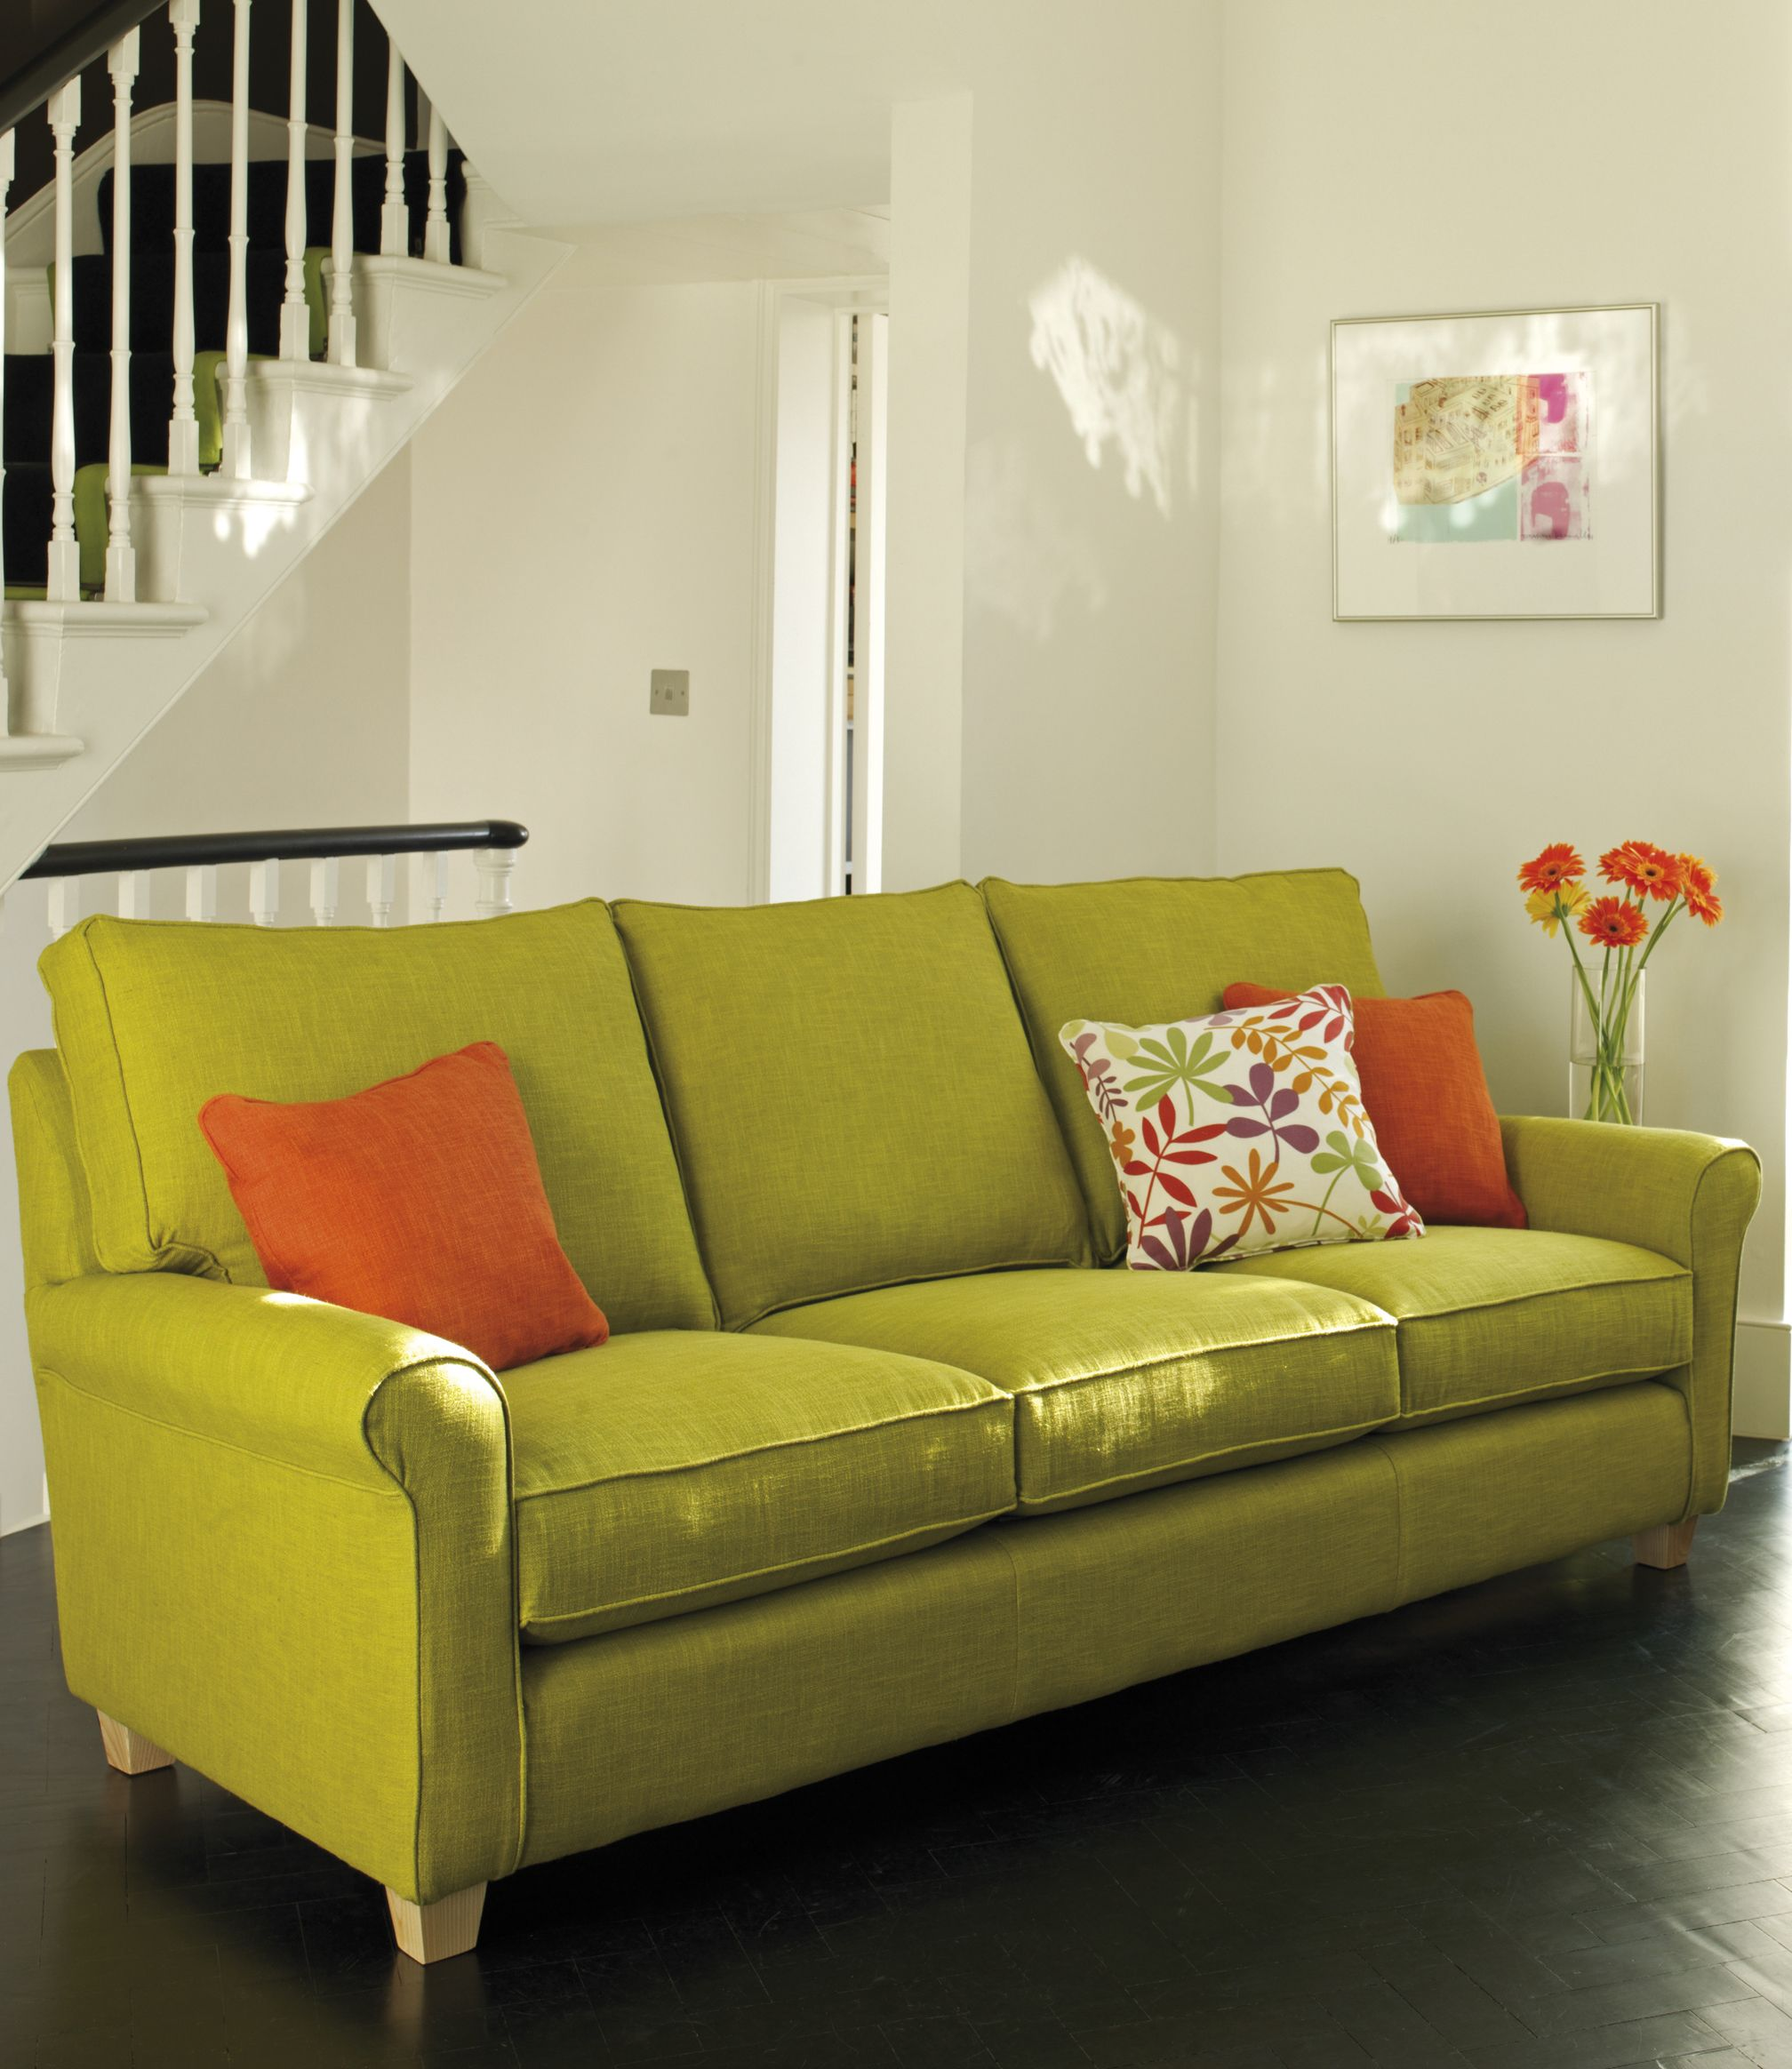 High Quality Go Bold And Bright With A Sofa That Screams Of Summer. We Love Multiyorku0027s  Liberty